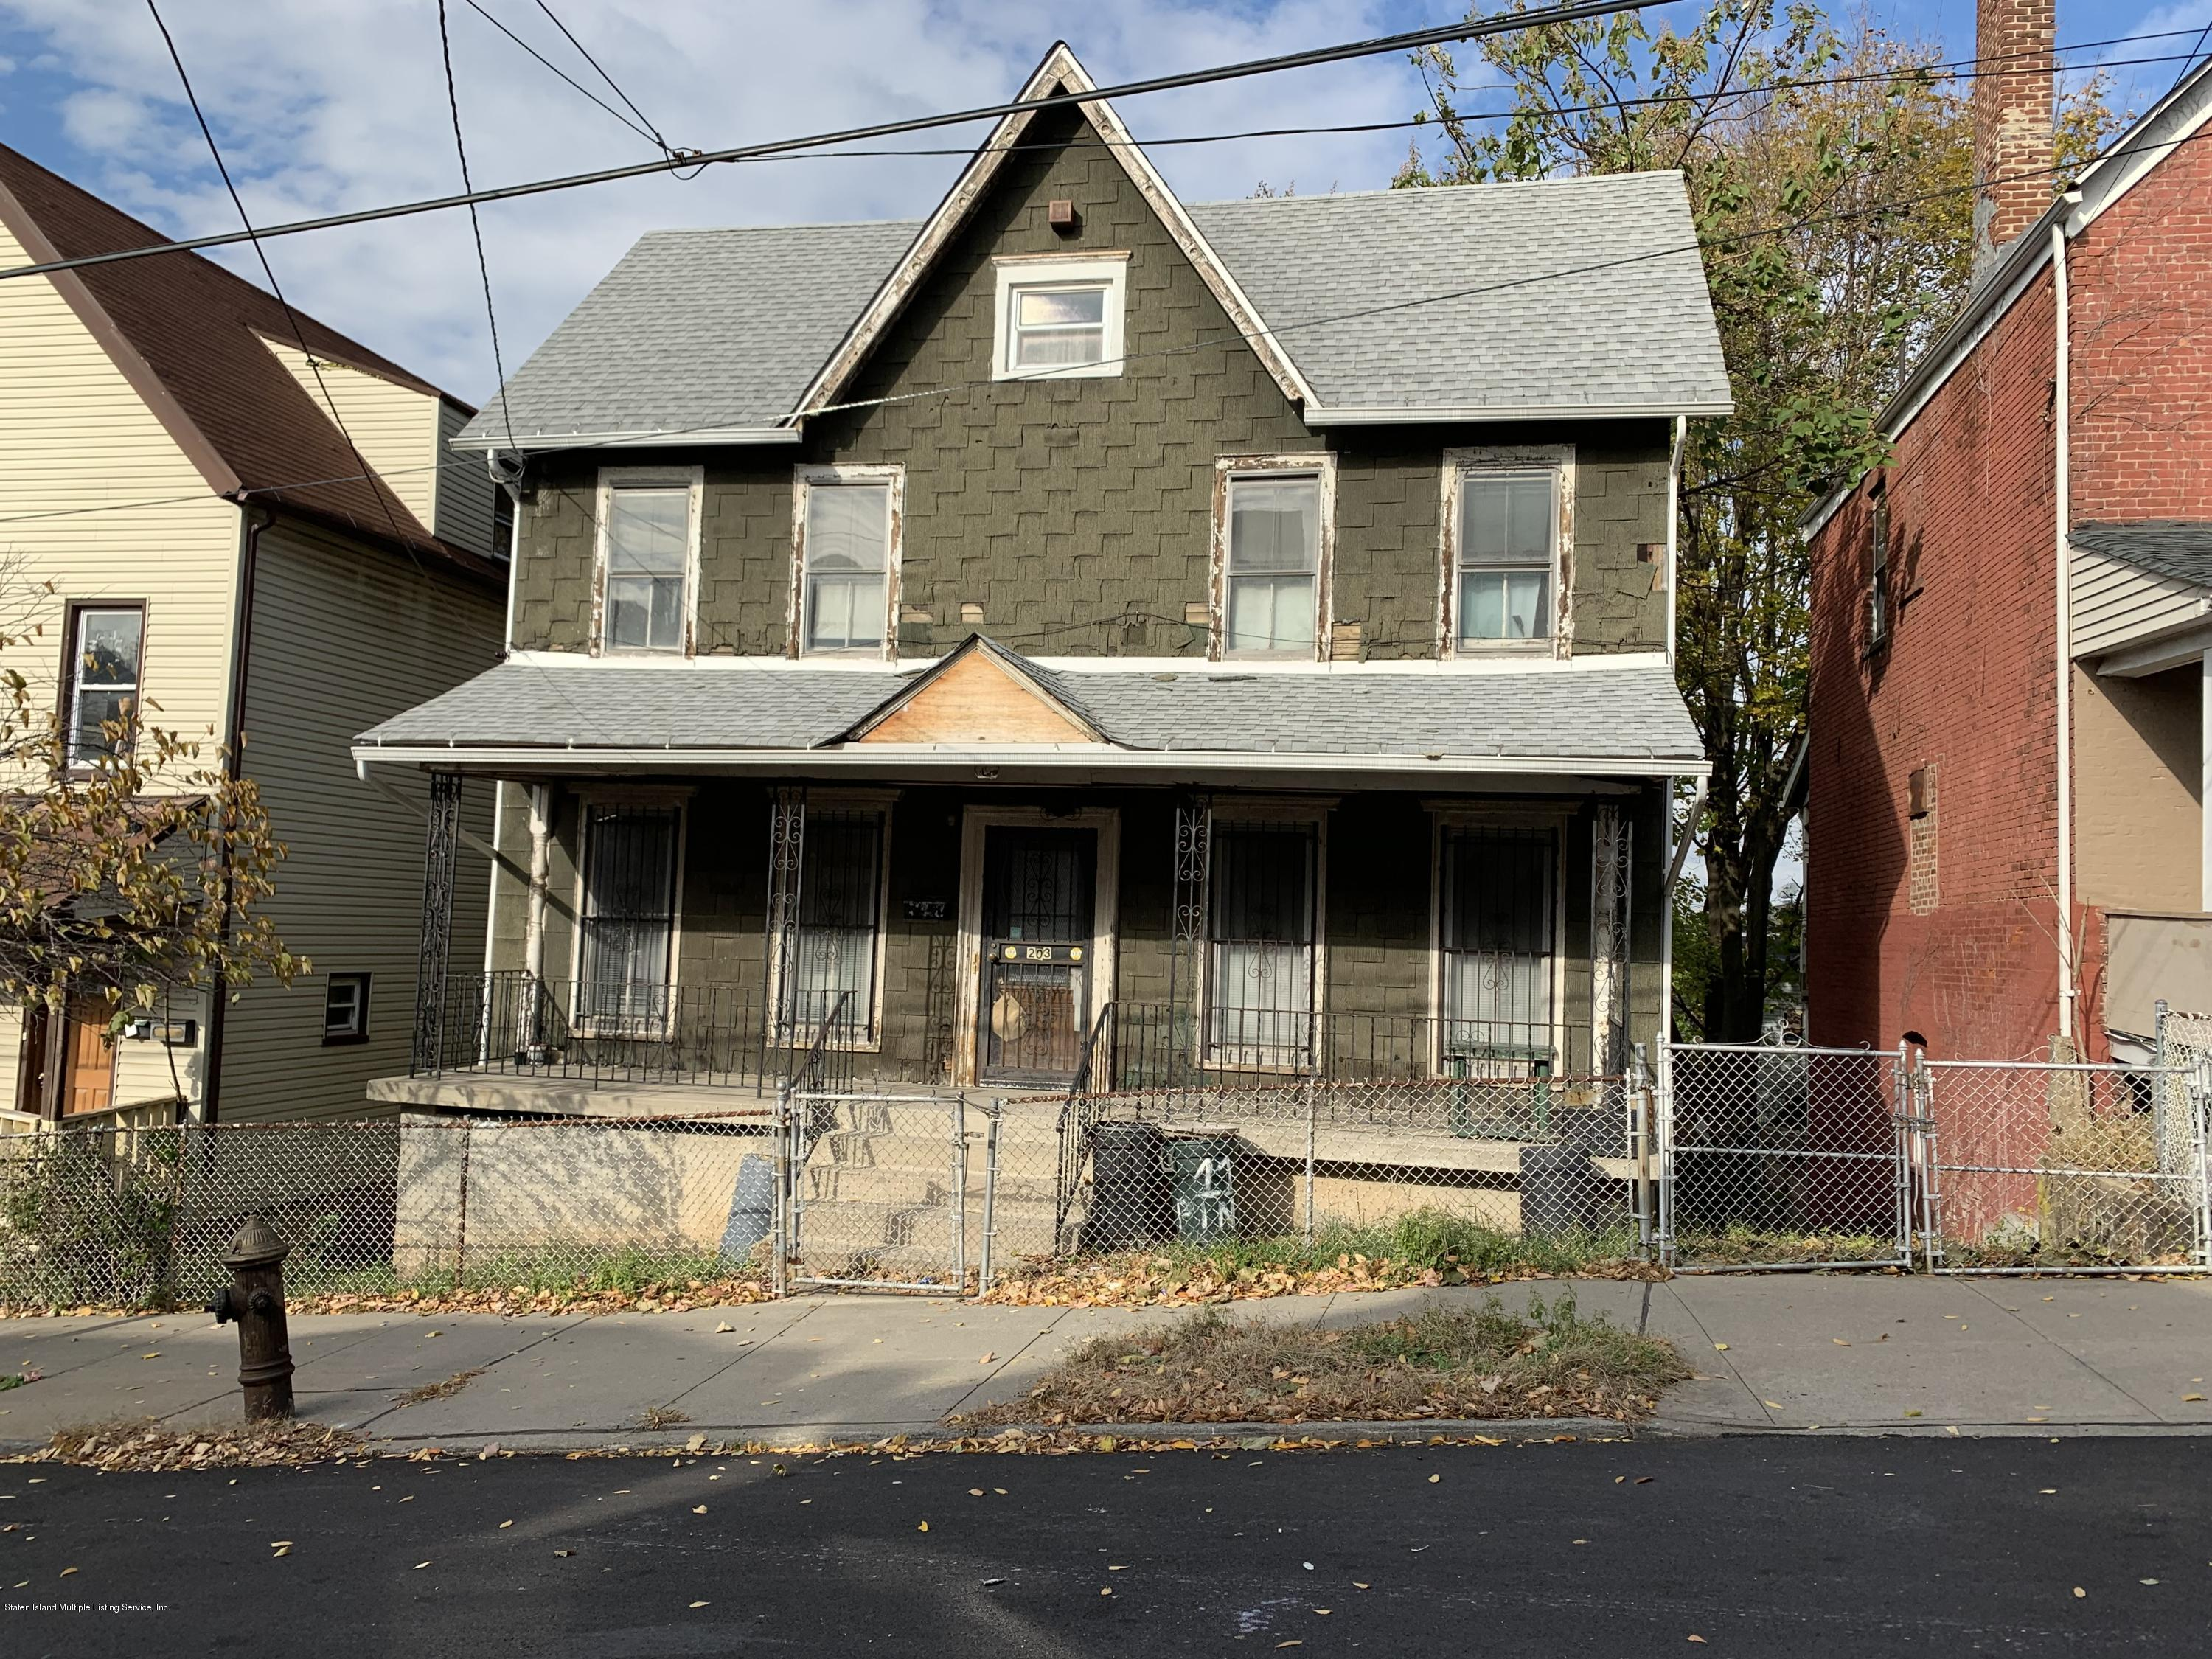 203 Benziger Avenue,Staten Island,New York,10301,United States,2 Bedrooms Bedrooms,5 Rooms Rooms,1 BathroomBathrooms,Residential,Benziger,1124481